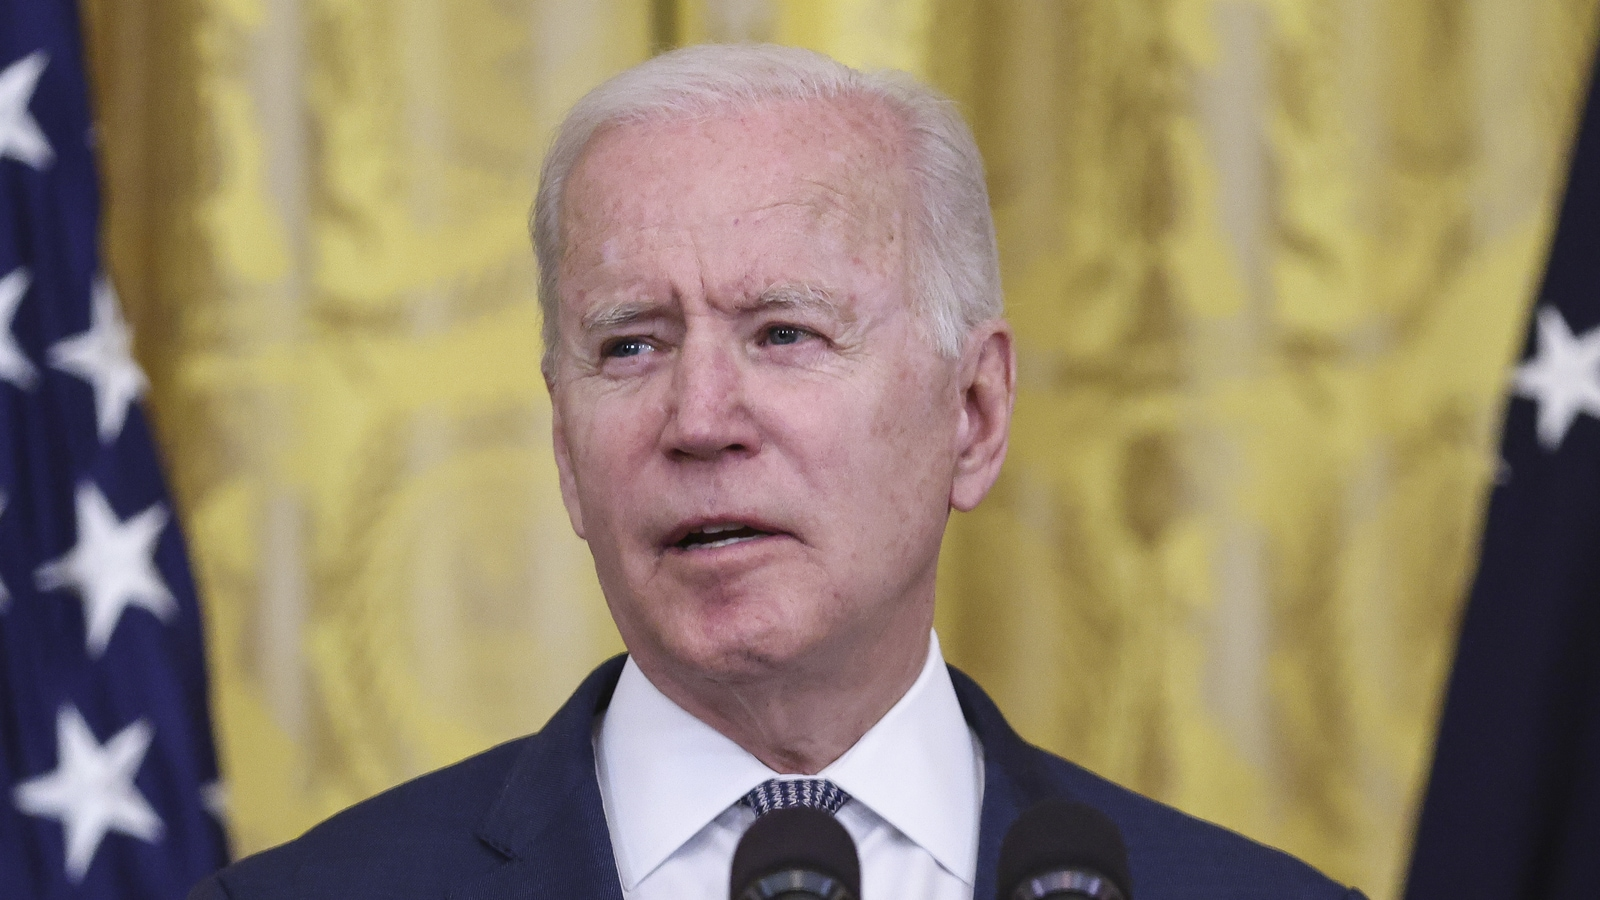 Chinese apps could face subpoenas or bans under Biden's executive order: Report thumbnail